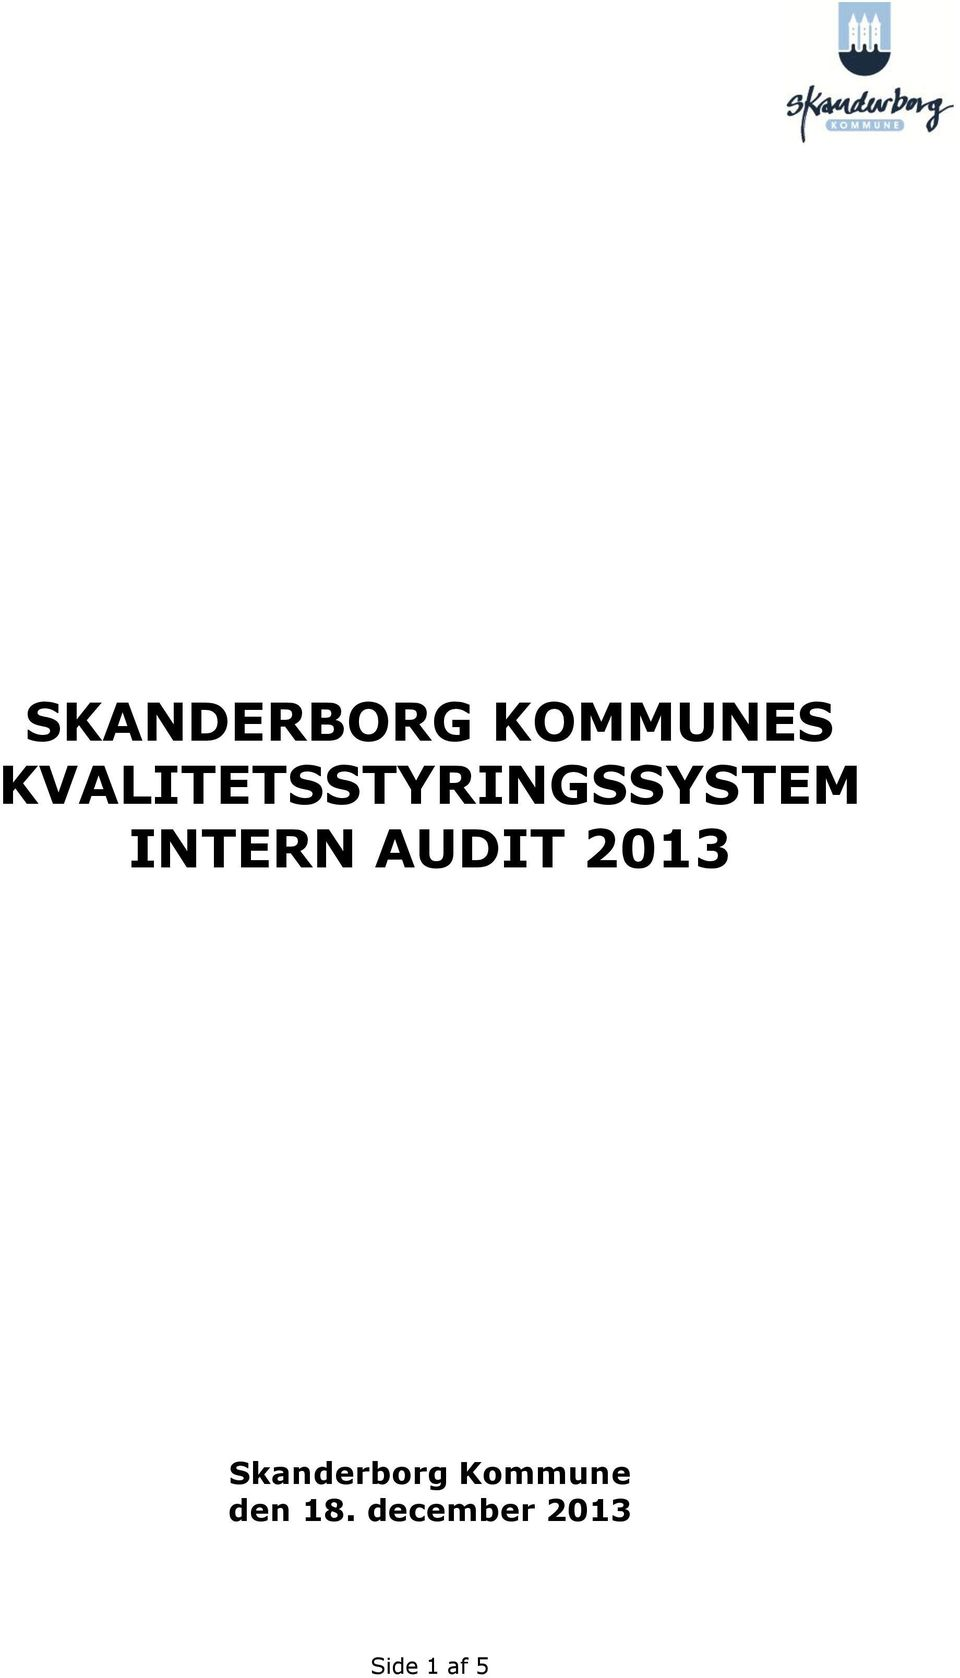 INTERN AUDIT 2013